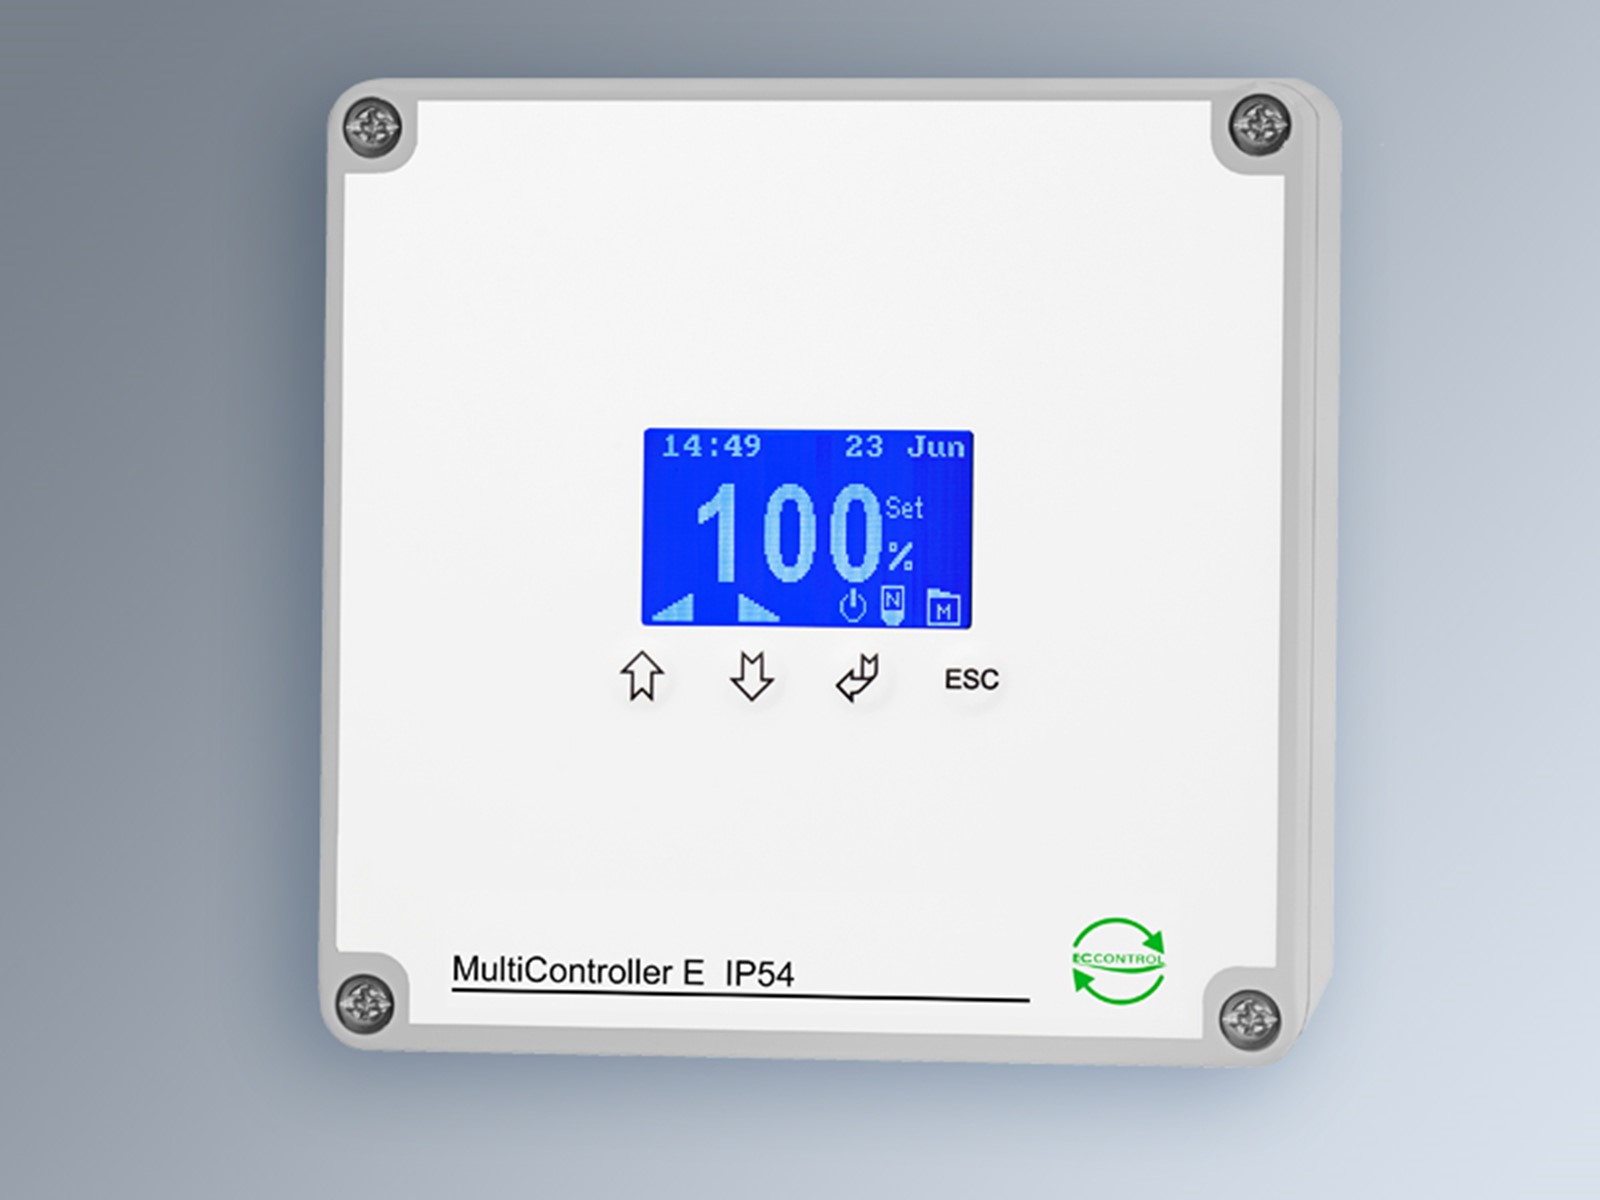 MultiController E Reg. 230V IP54 /ES 974